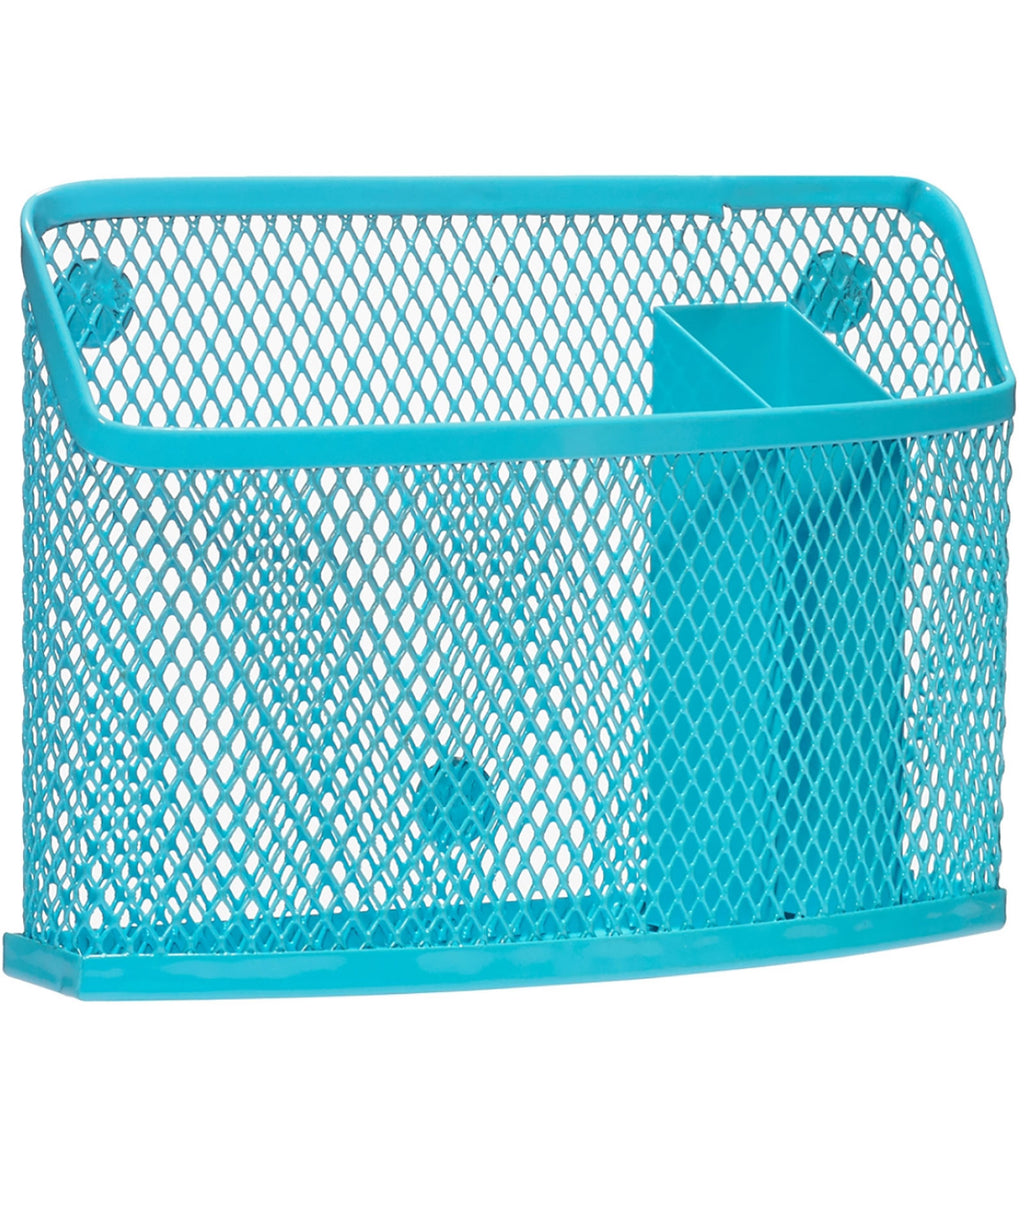 Three Cheer for Girls Turquoise Storage Bin